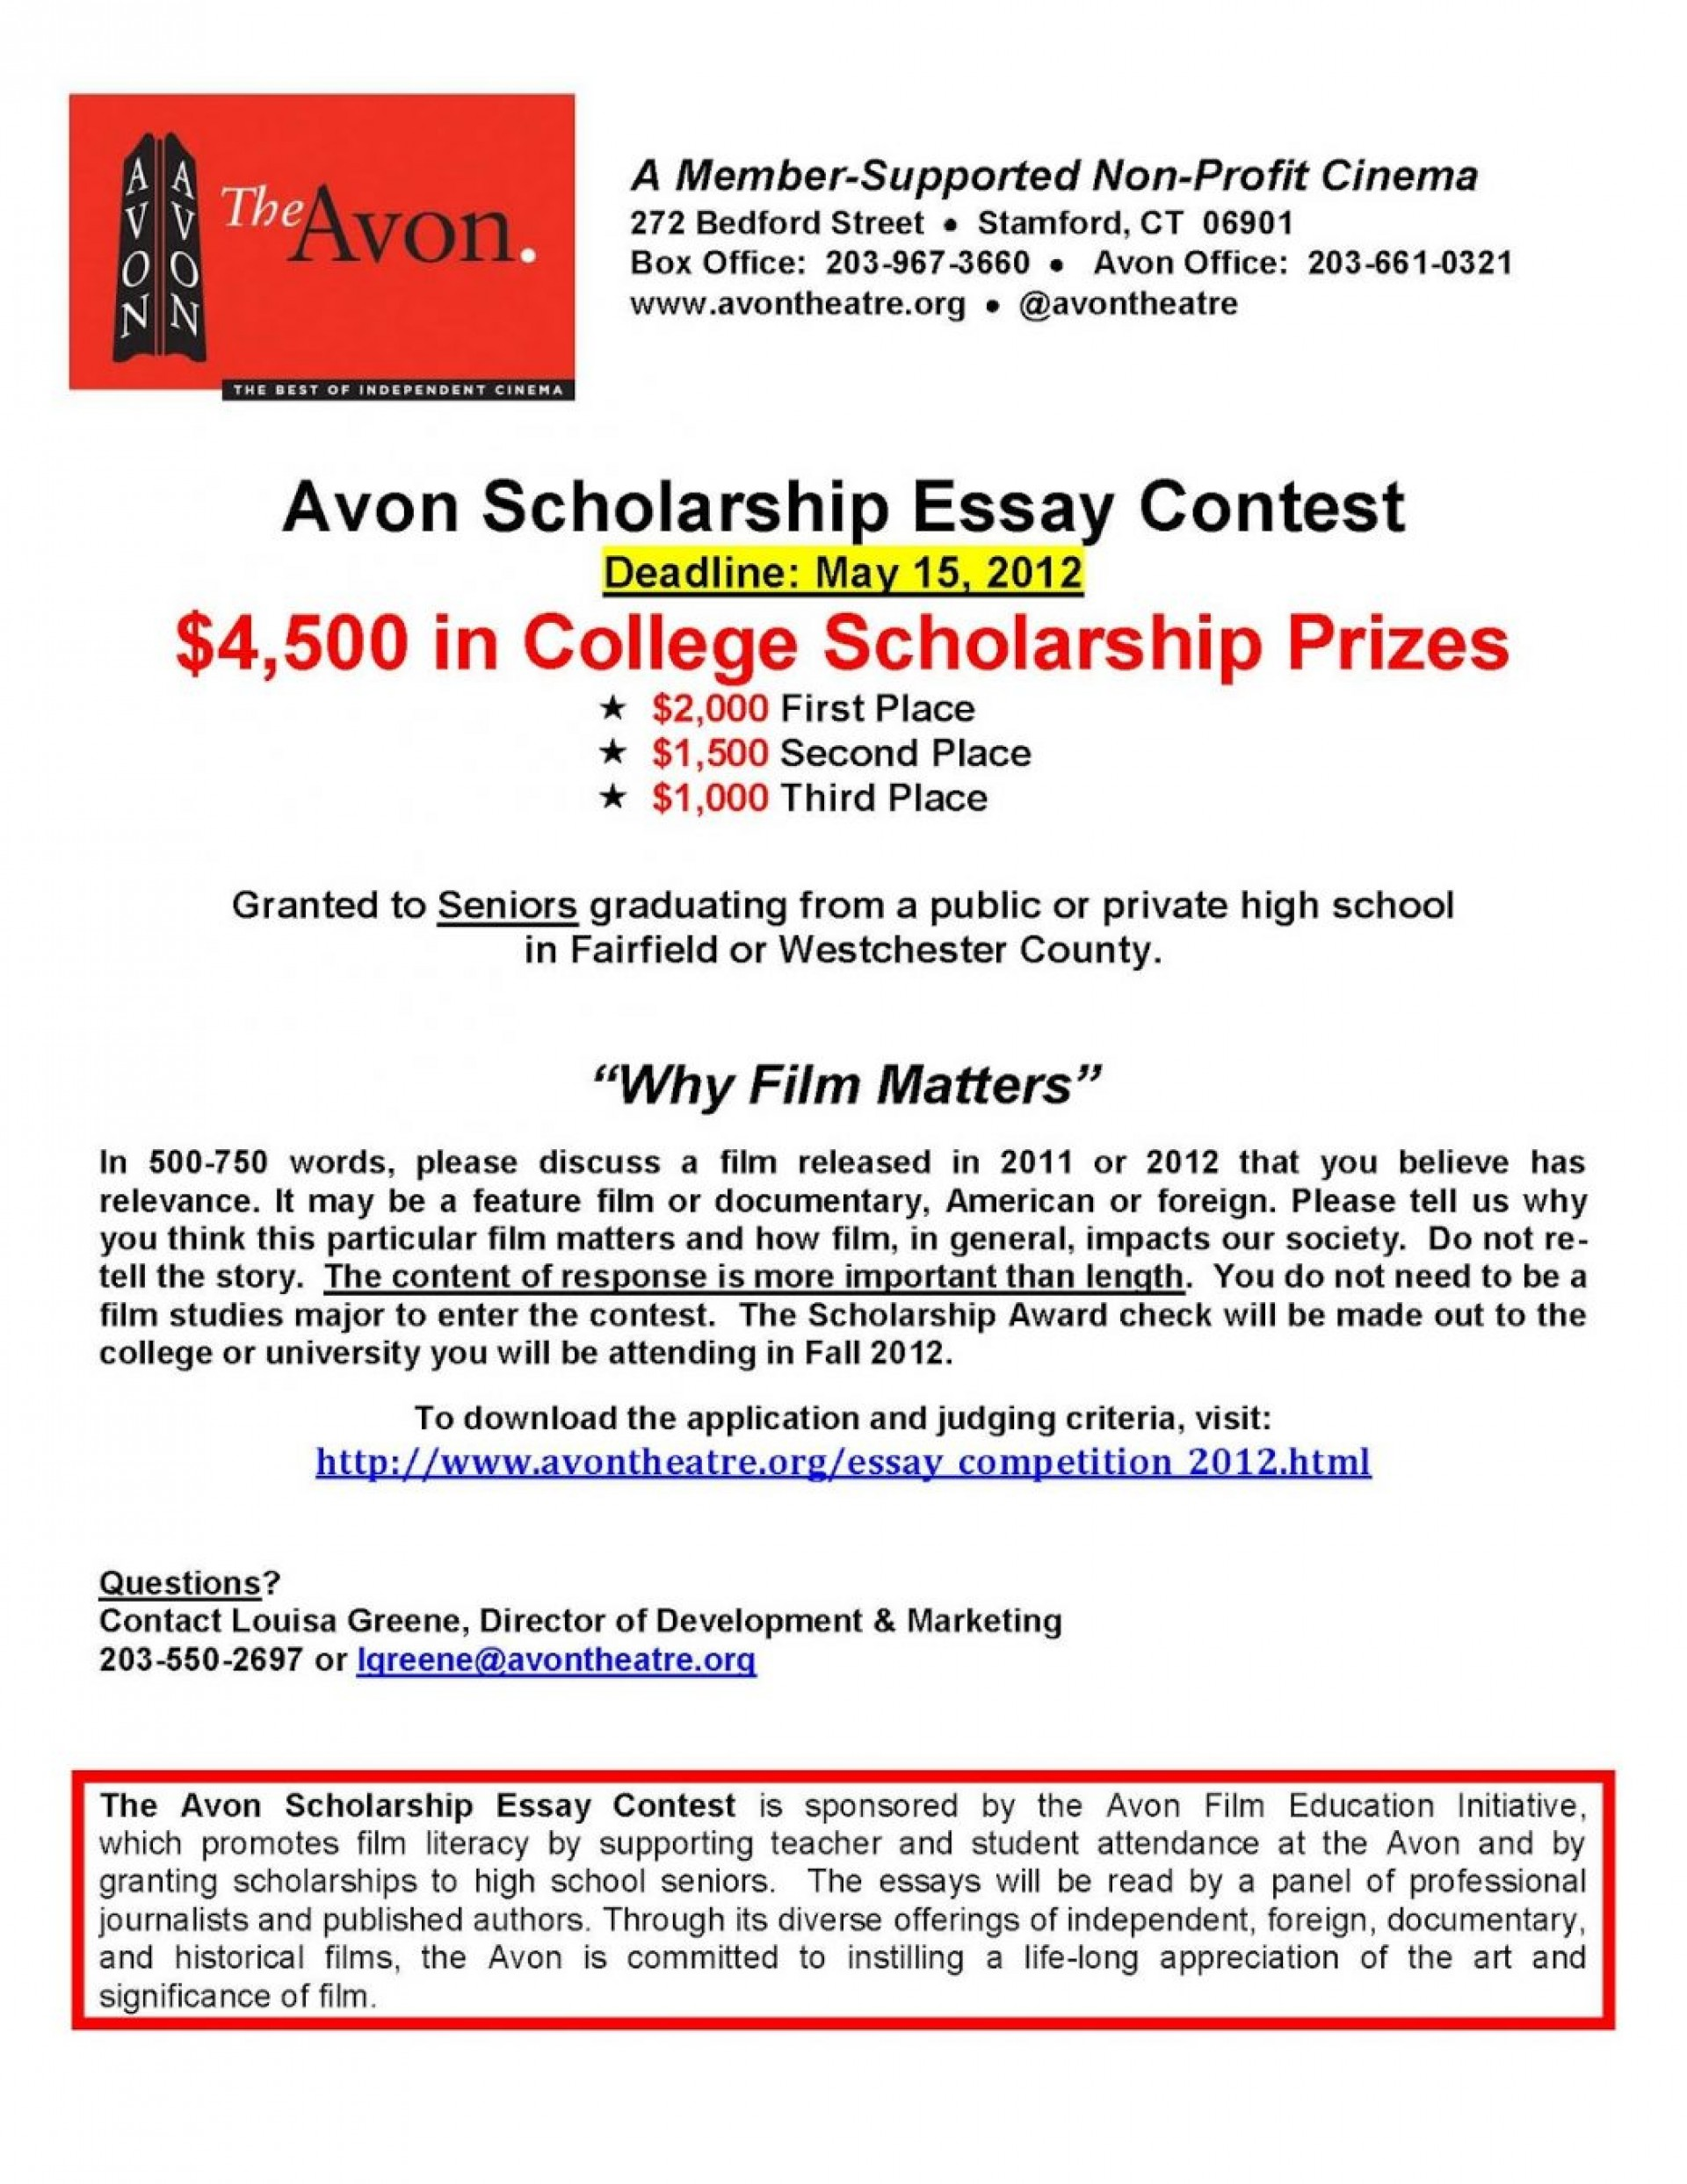 003 Easy Scholarships No Essay Example College Scholarship Prowler Avonscholarshipessaycontest2012 For High School Students Striking 2019 2018 1920